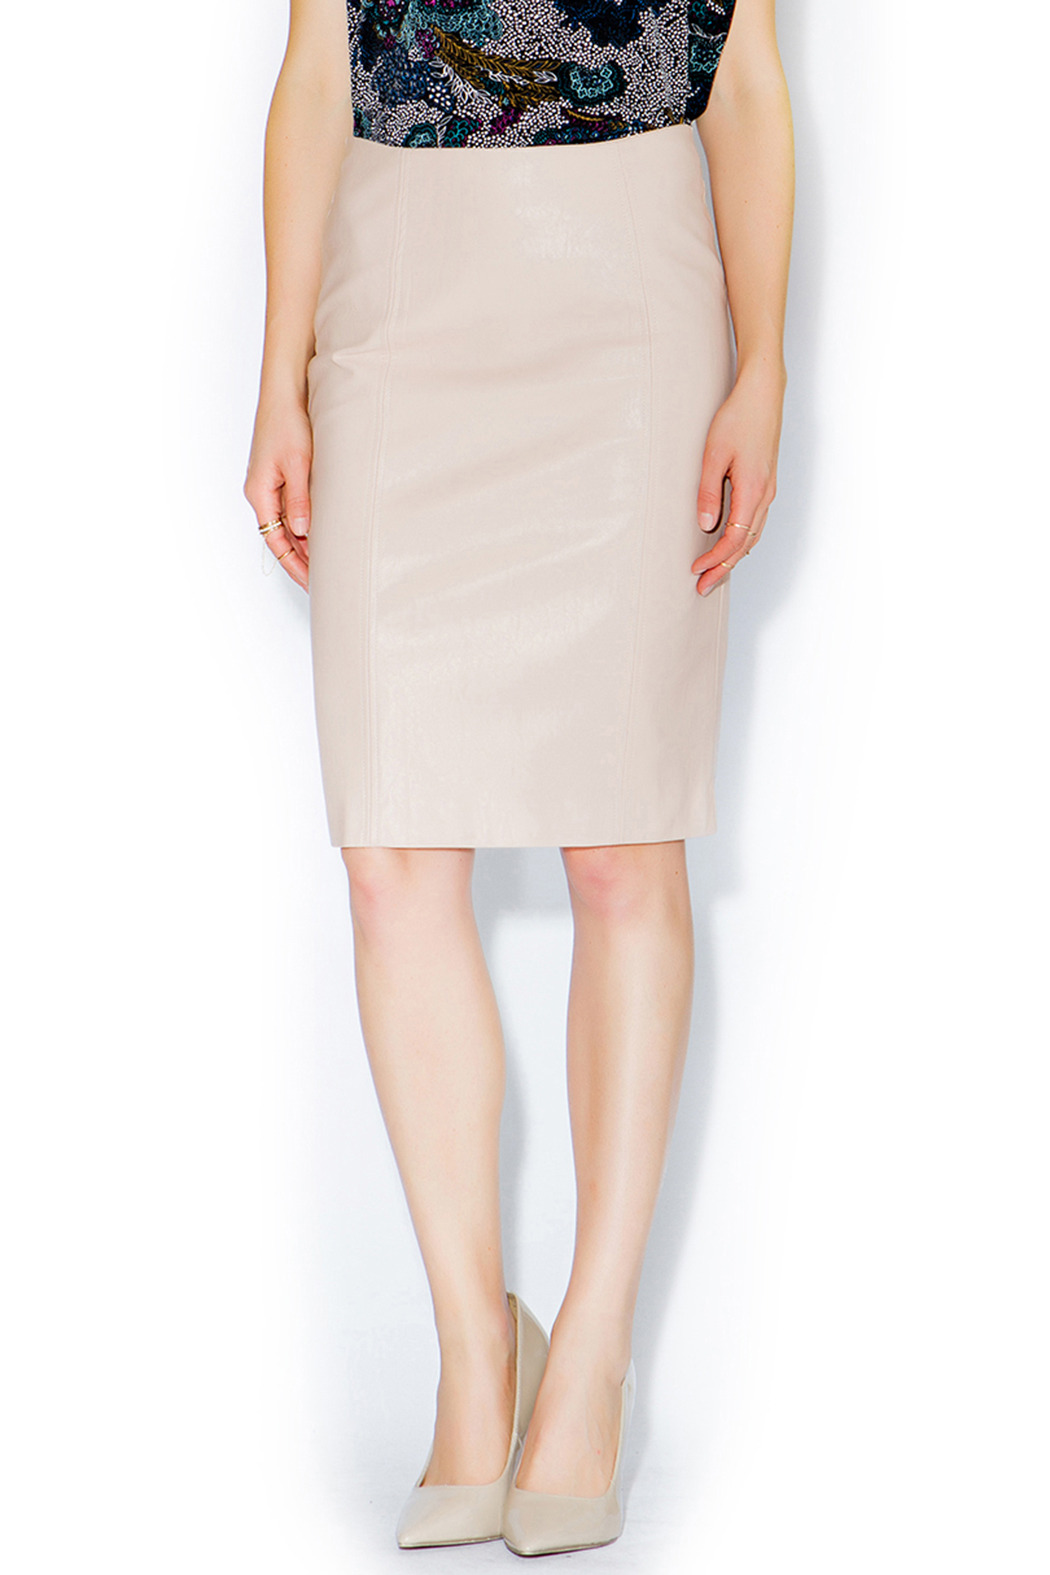 C. Luce Blush Leather Pencil Skirt from Louisiana by Mimosa ...